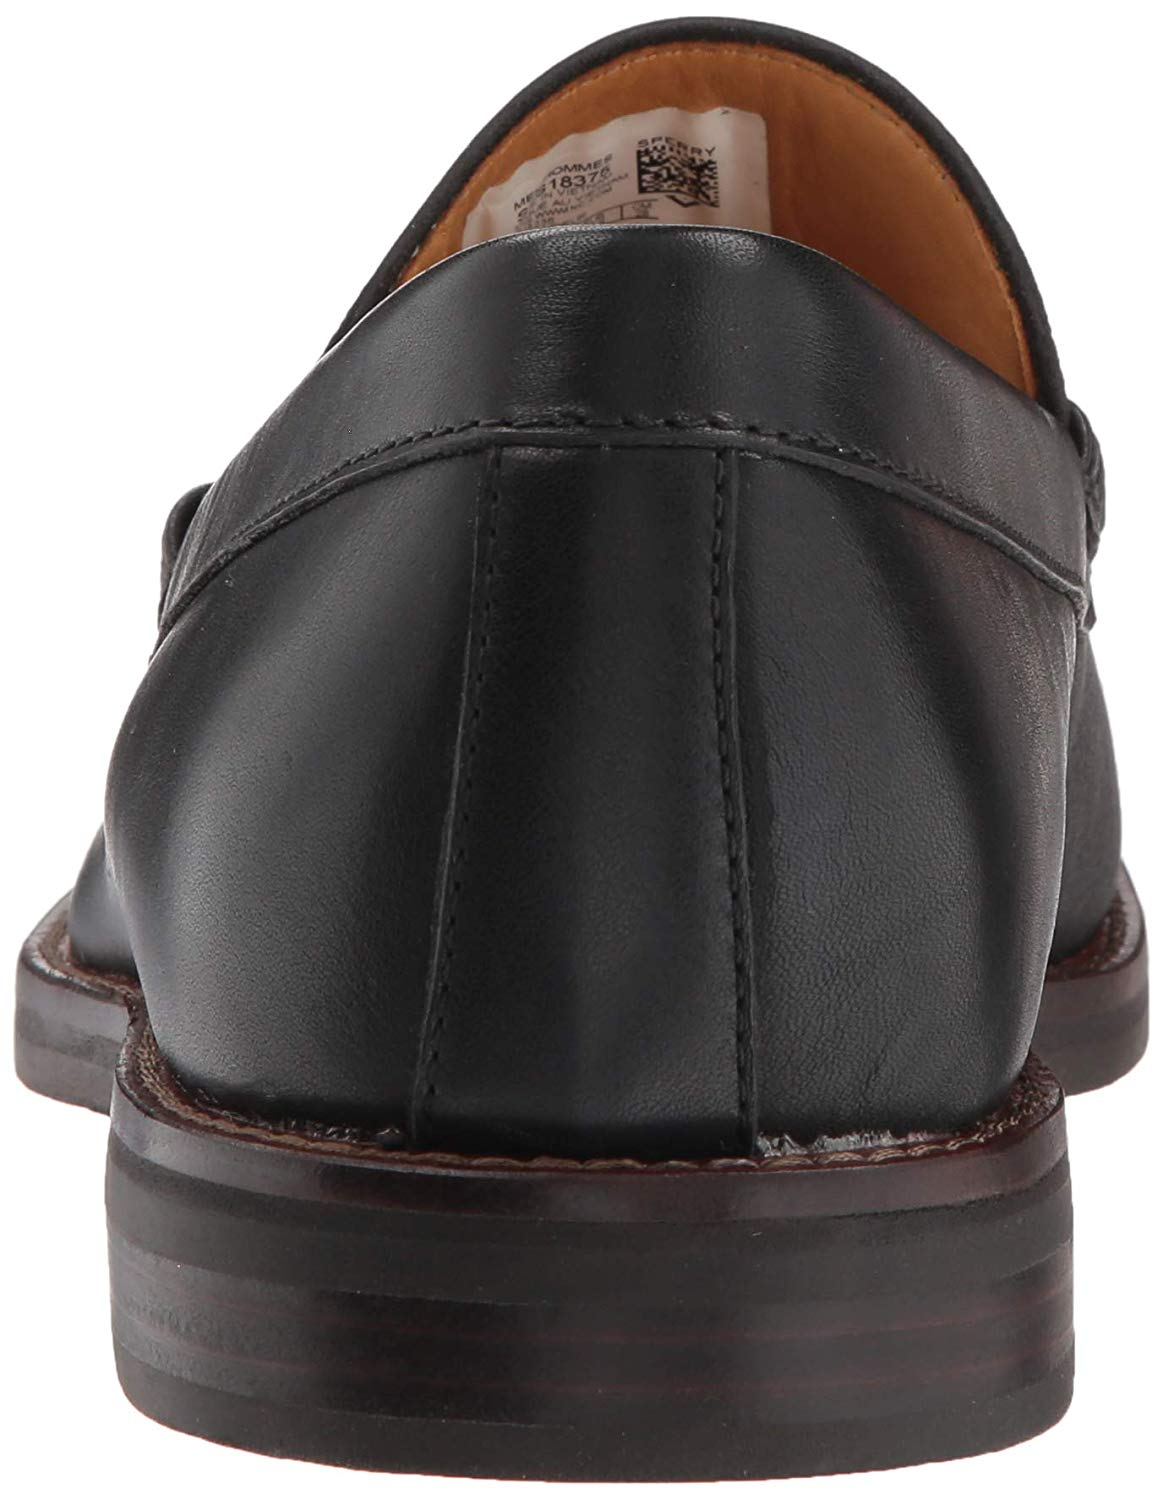 Sperry Men's Gold Cup Exeter Penny Loafer, Black, Size 13 ...